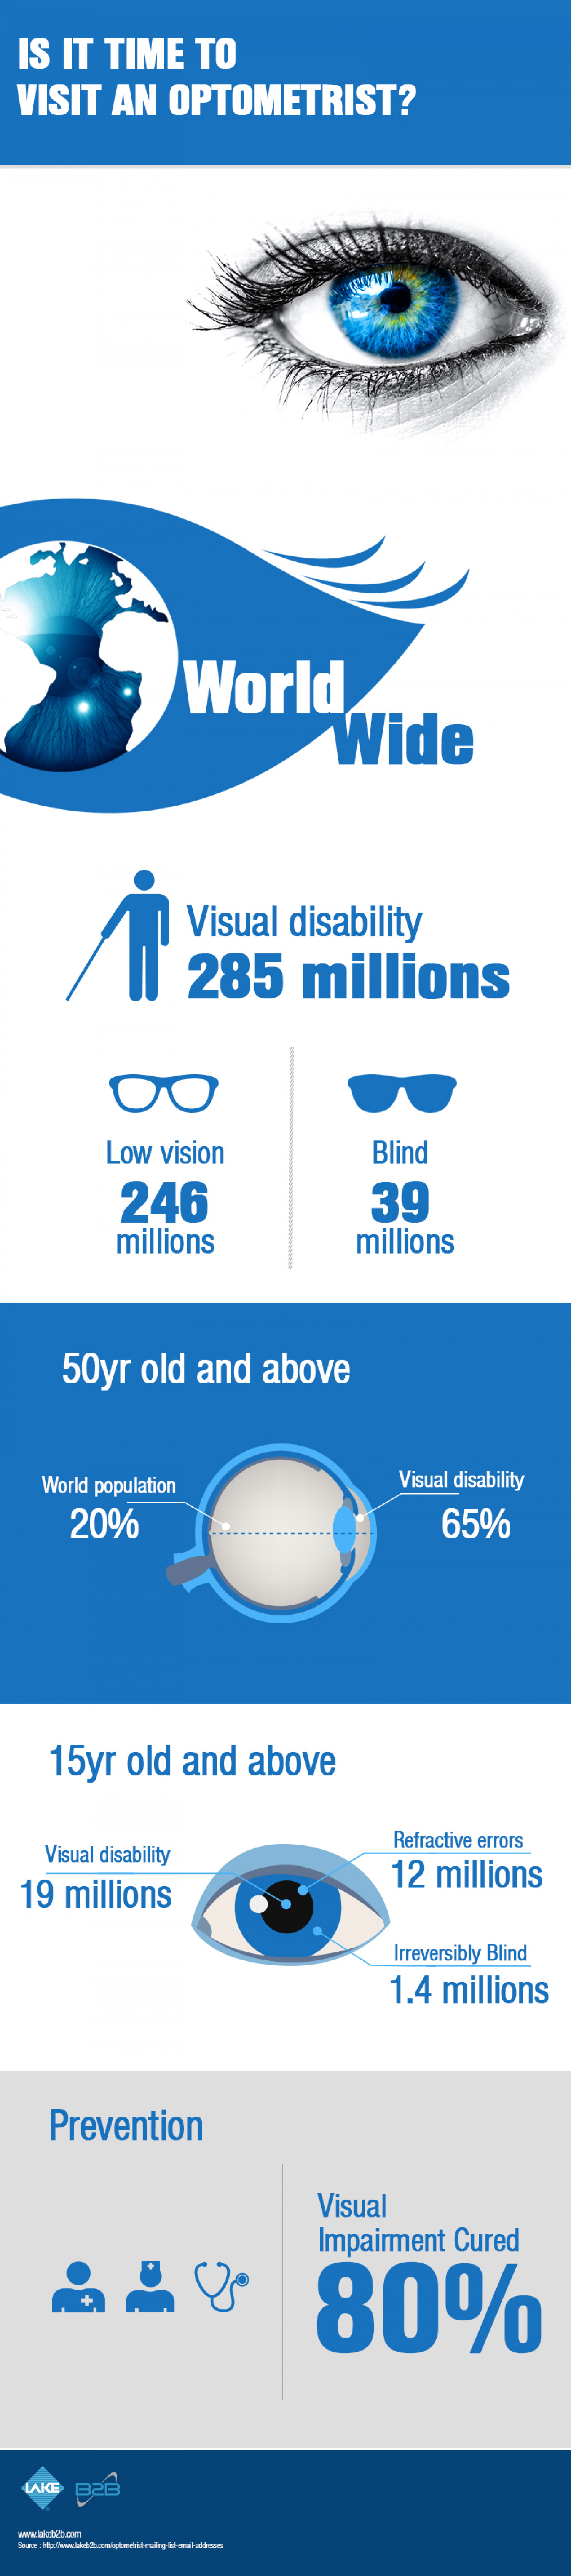 Is It Time To Visit An Optometrist? Infographic